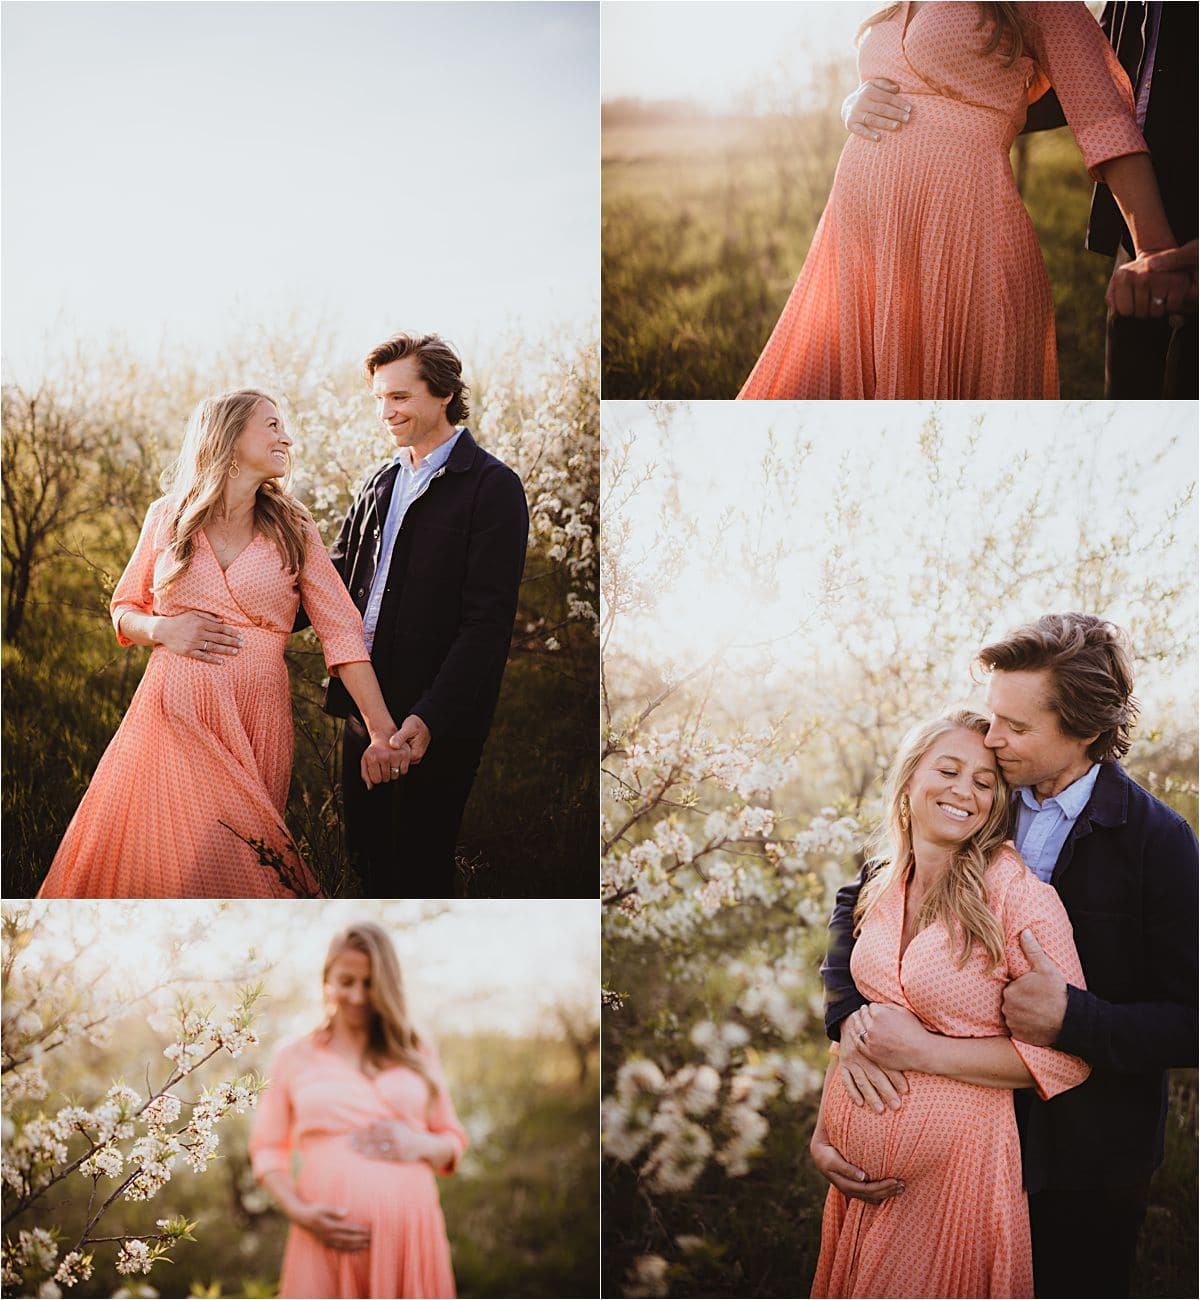 Spring Blooms Maternity Session at Sunset